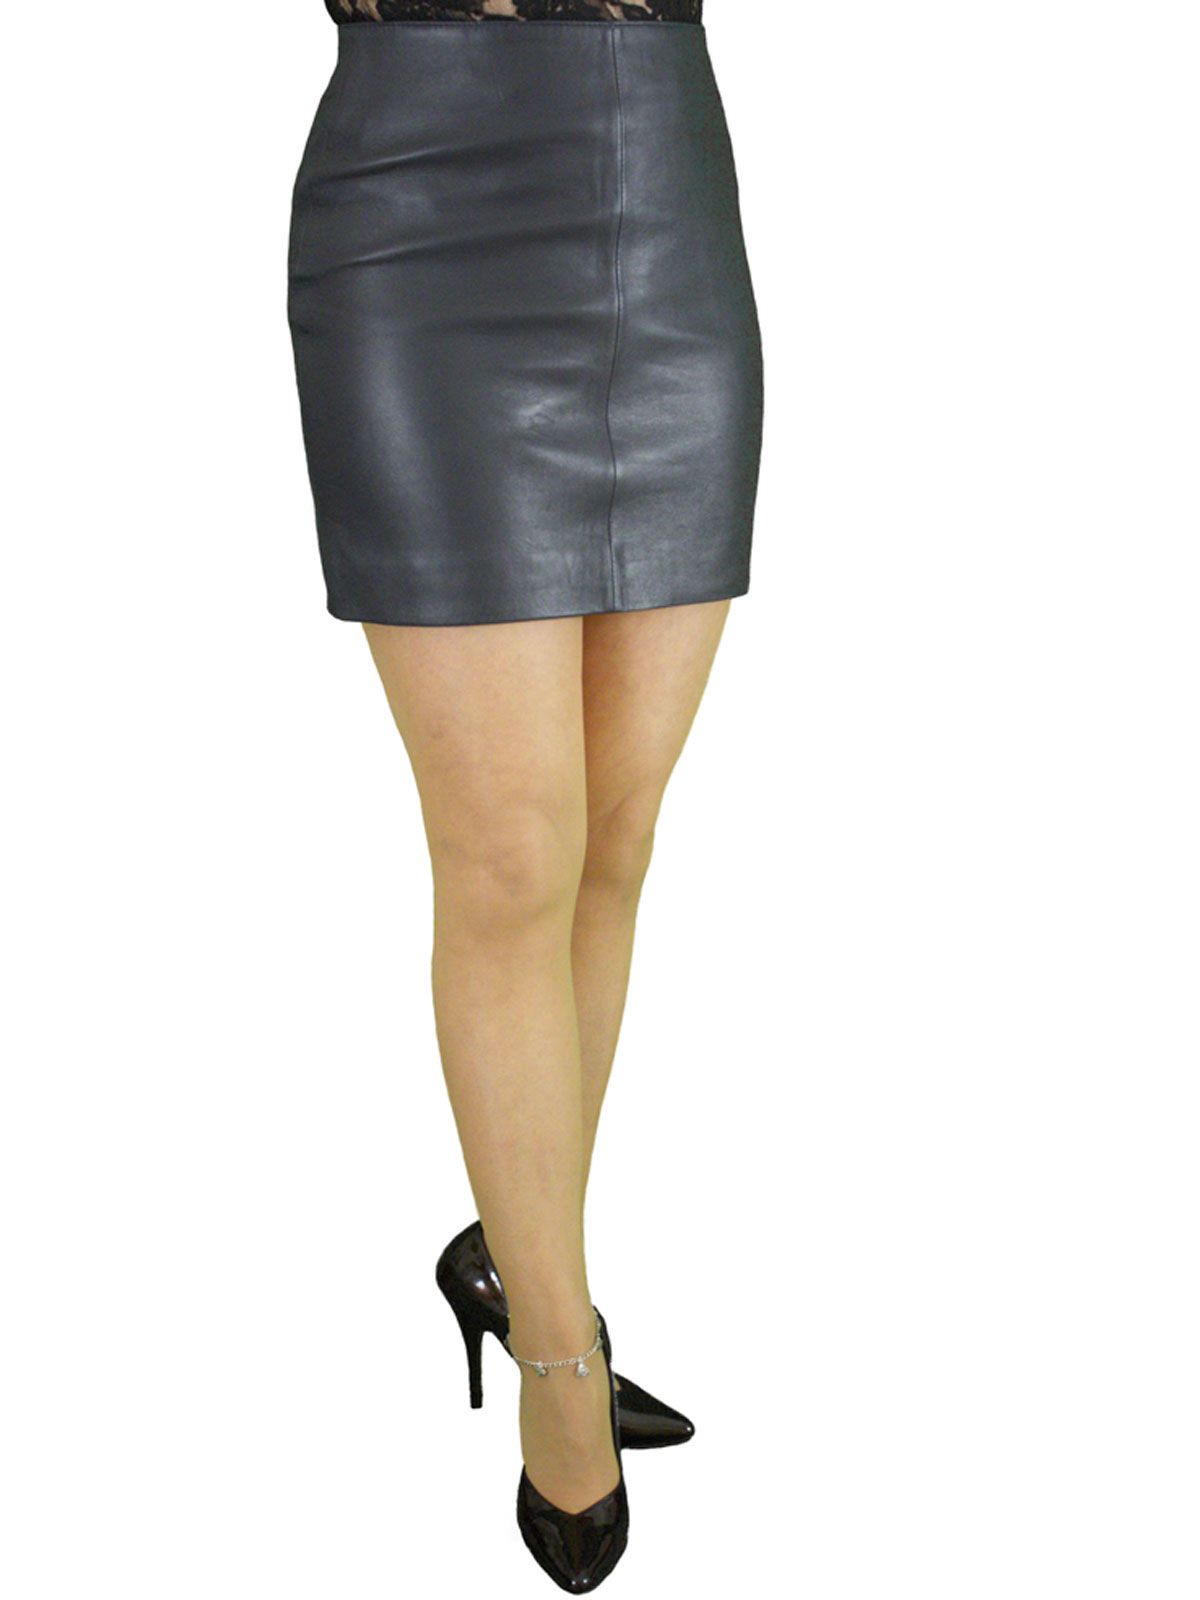 Soft Leather Mini Skirt With Full Rear Zip 4 Colours